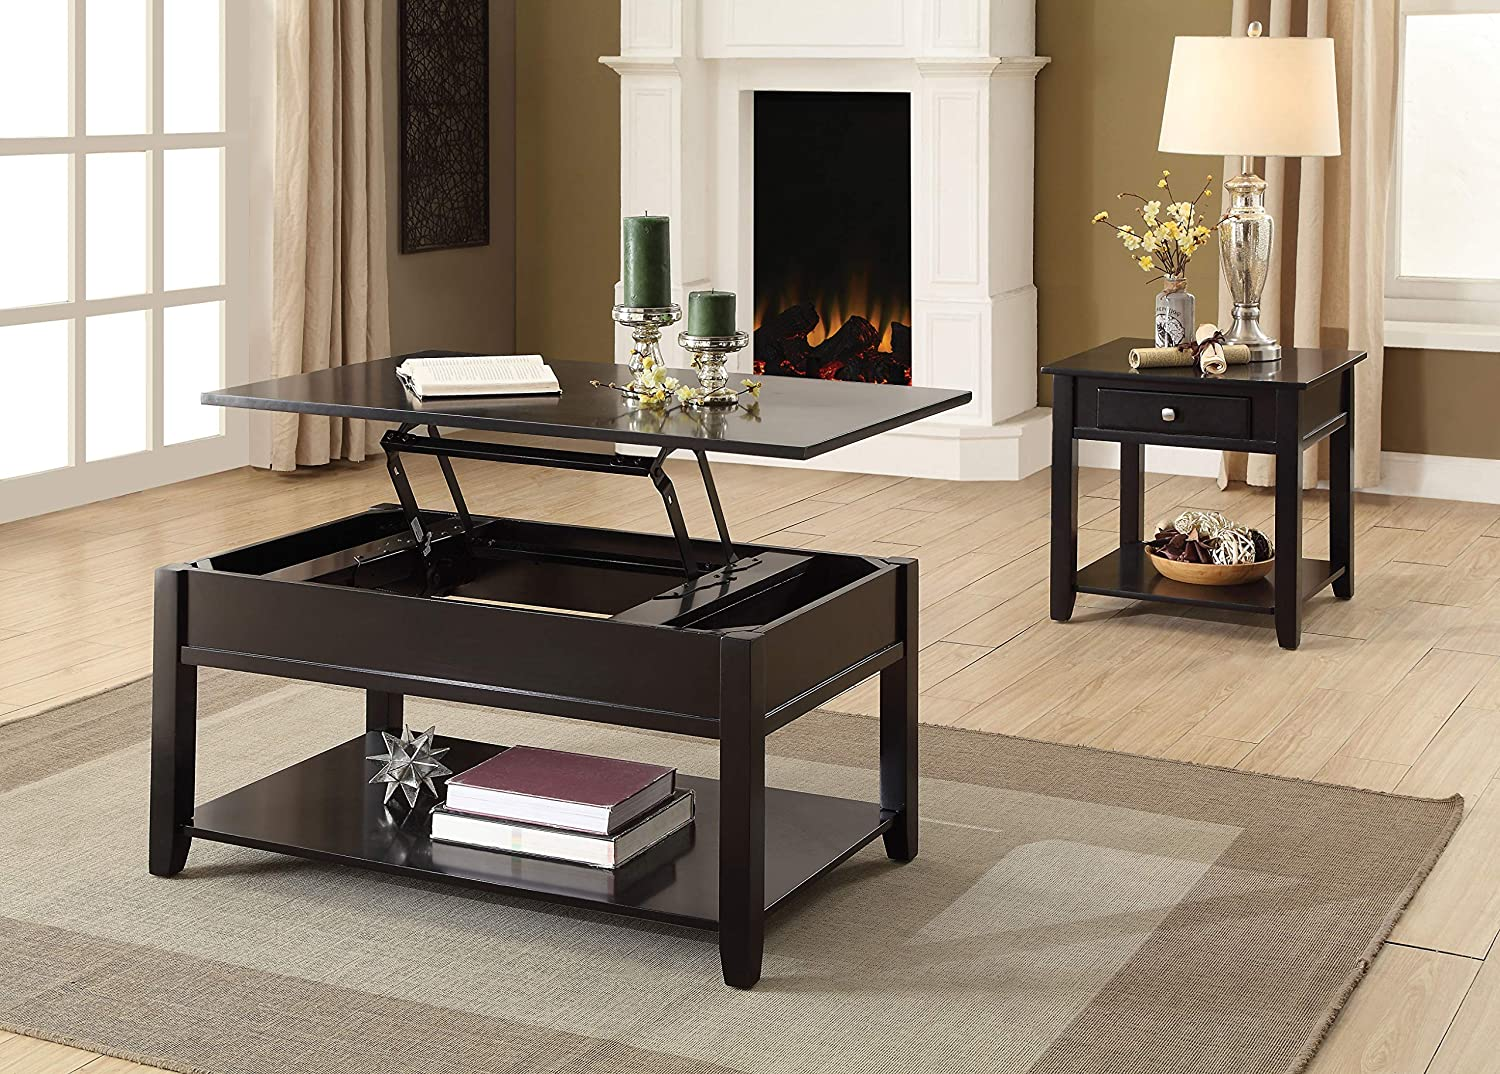 Amazon Com Acme Furniture 82950 Malachi Coffee Table With Lift Top Black Furniture Decor